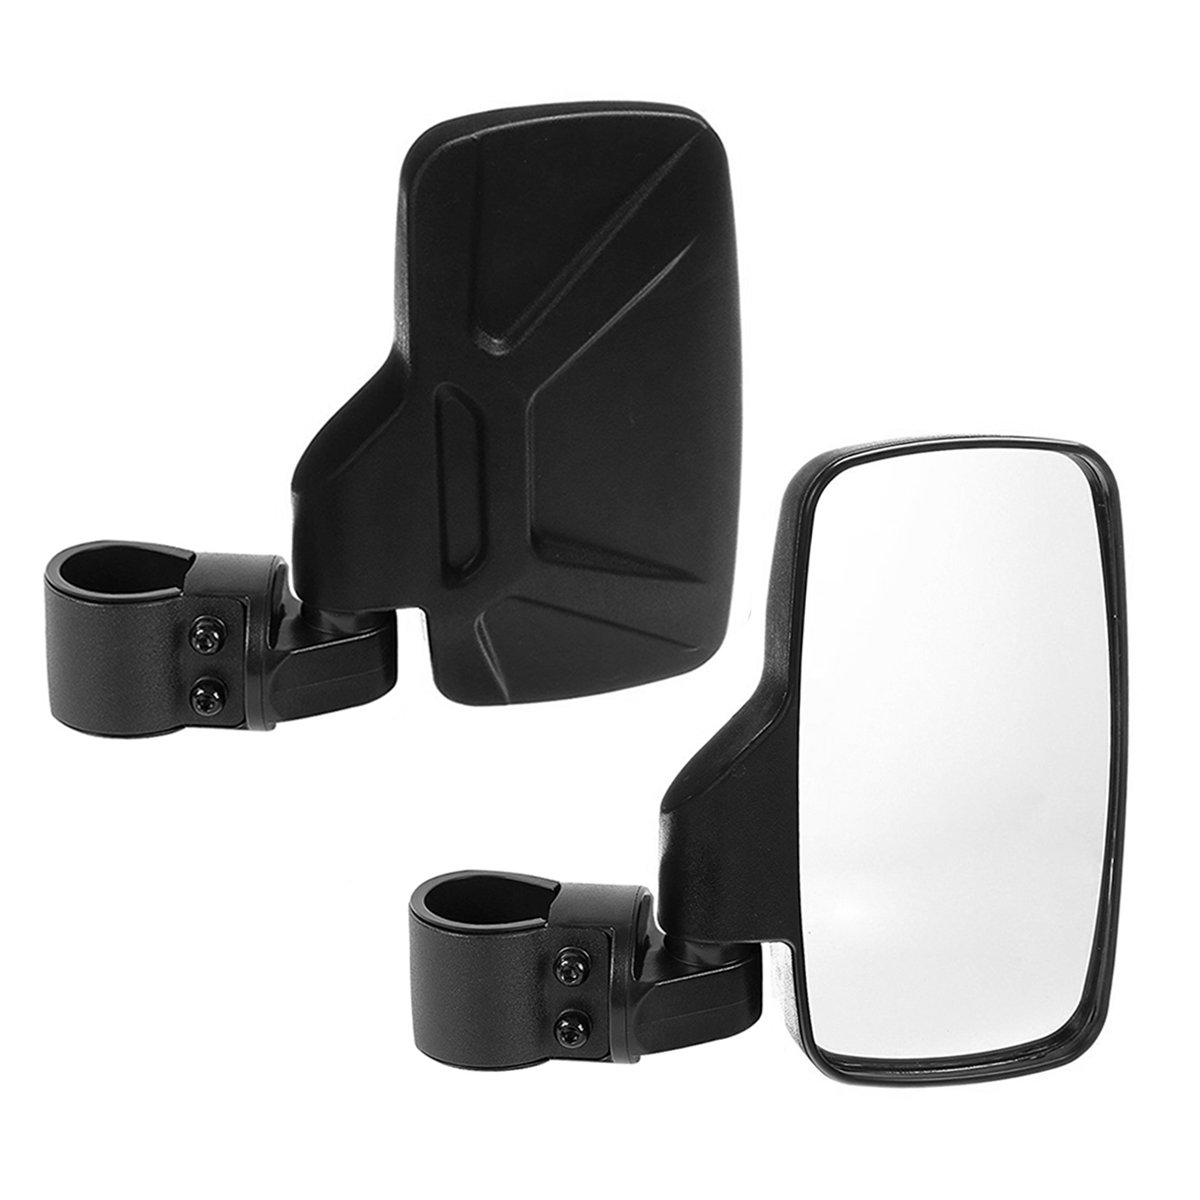 Universal Offroad Rear View Side Mirror for UTV High Impact Shatter-Proof Tempered Glass SPAUTO UTV Side View Mirrors Fits Driver and Passenger Side Pack of 2 For 1.6-2inch Roll Cage Bar